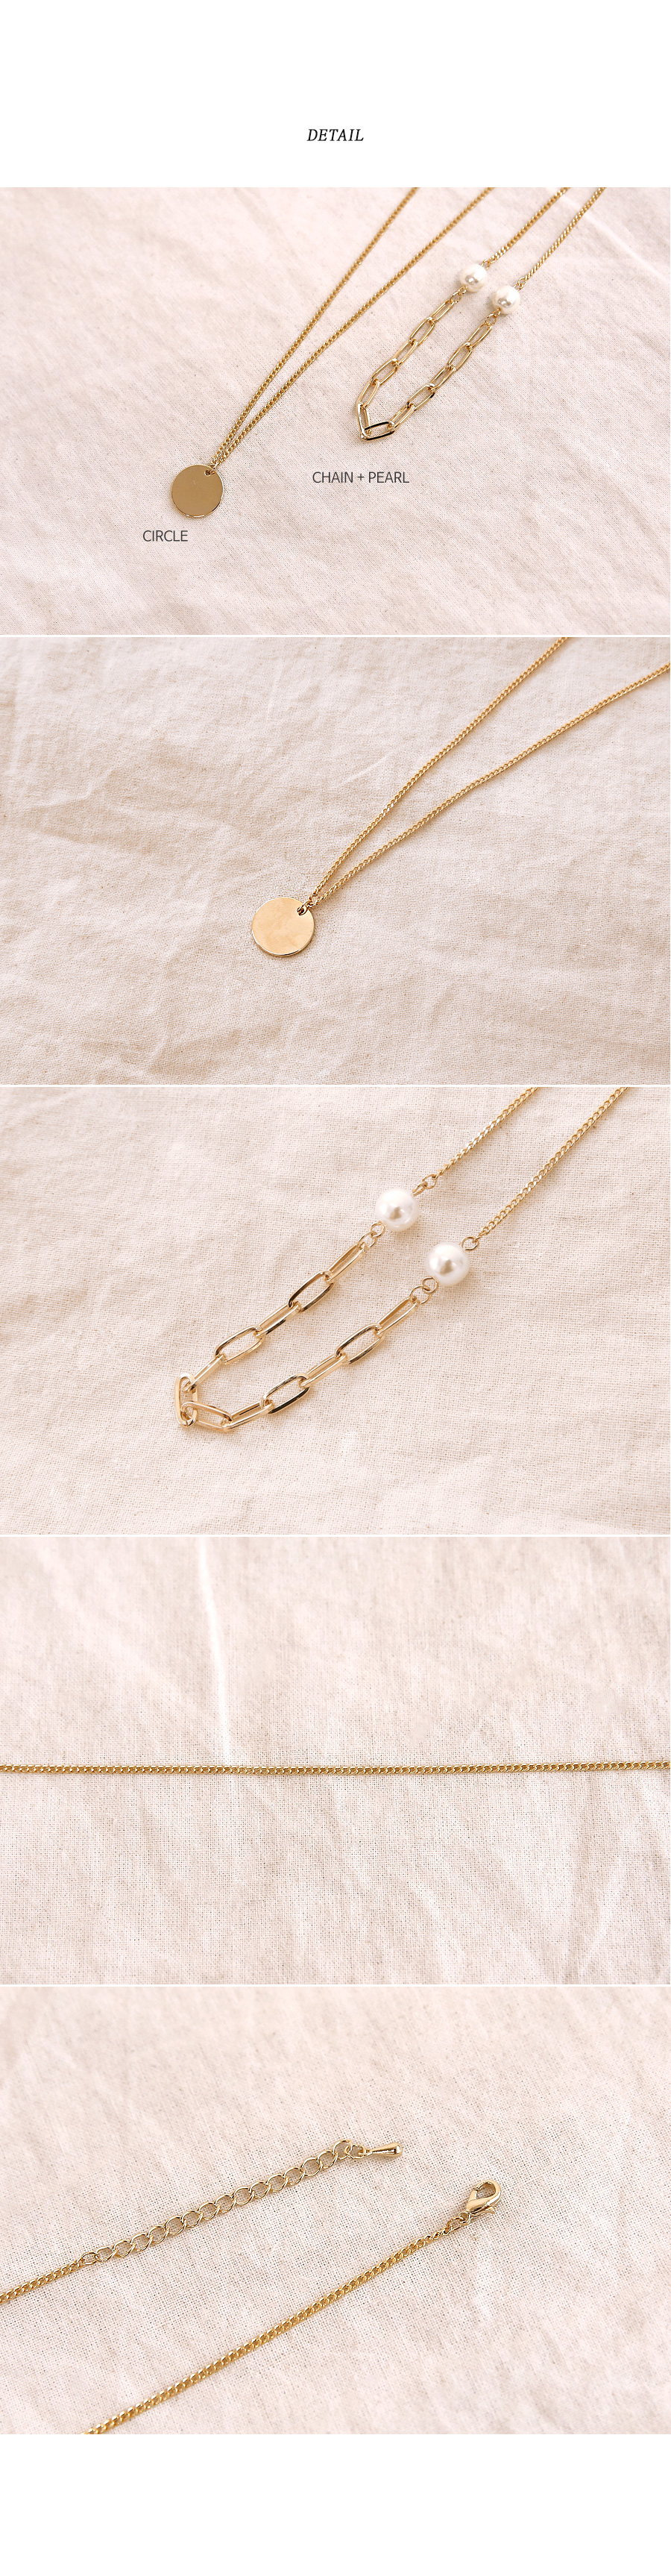 LEANG PEARL LAYERED NECKLACE